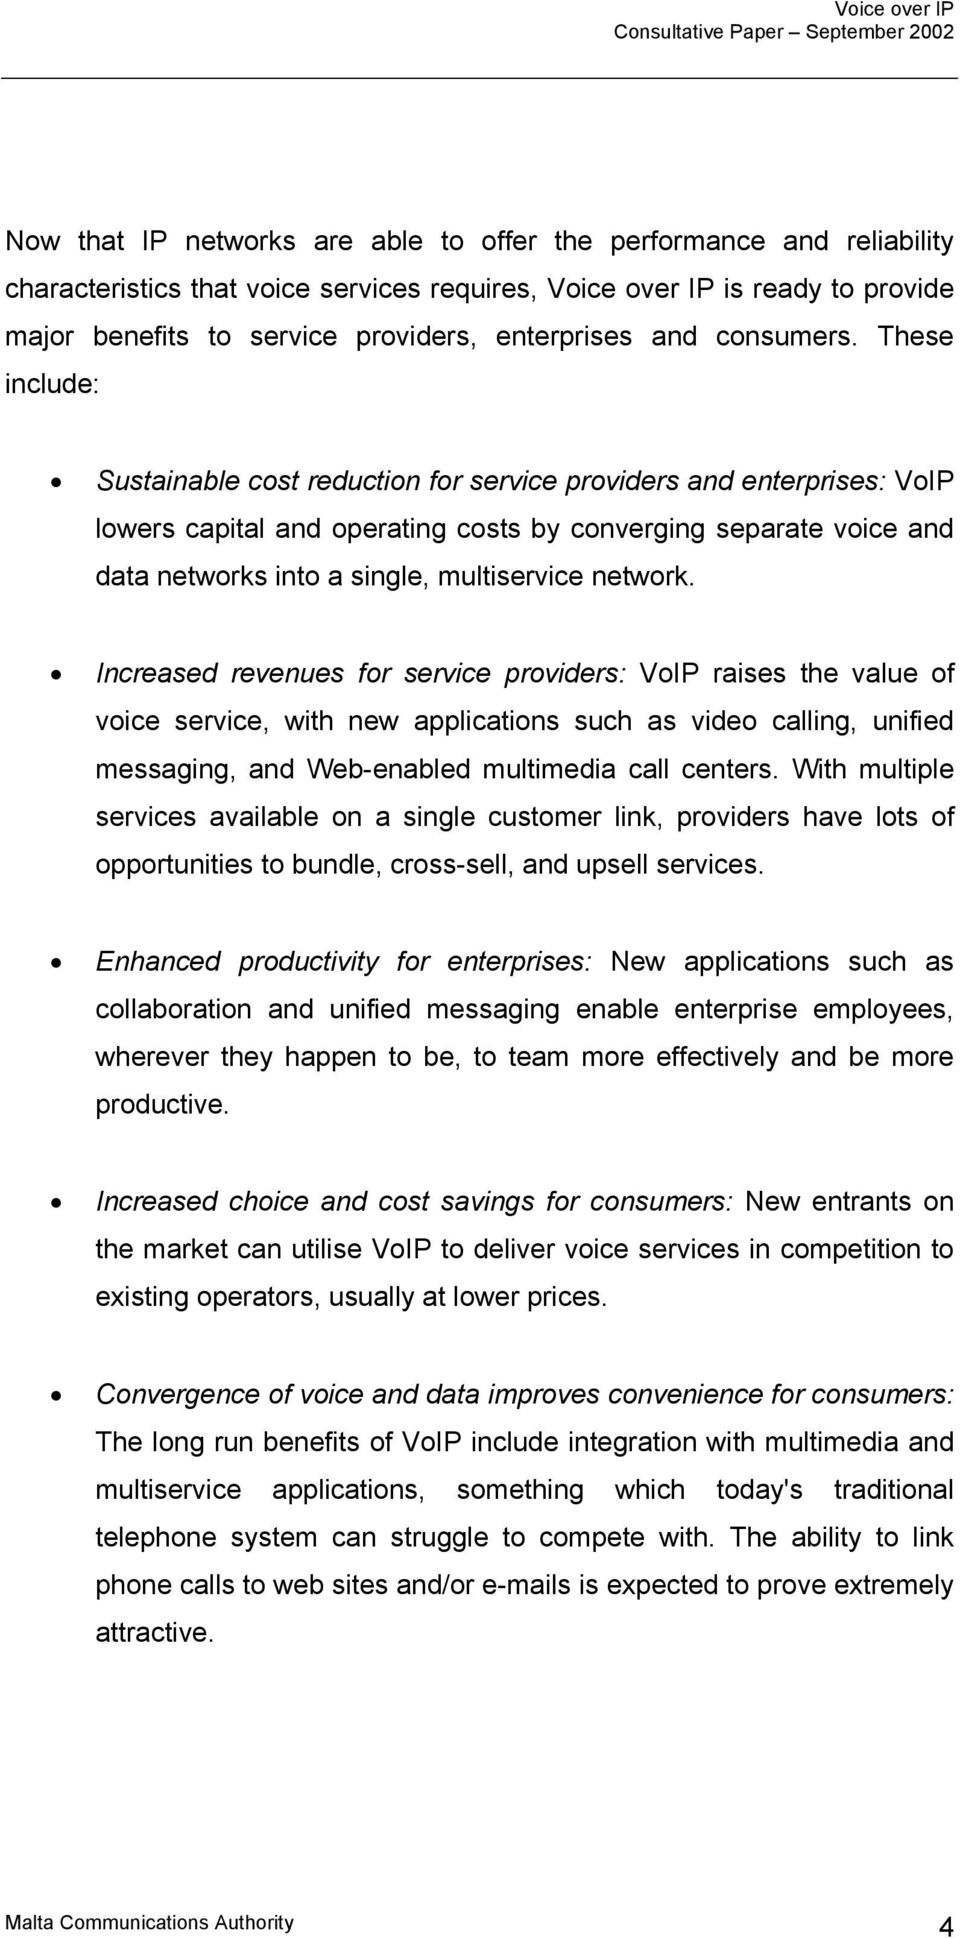 These include: Sustainable cost reduction for service providers and enterprises: VoIP lowers capital and operating costs by converging separate voice and data networks into a single, multiservice